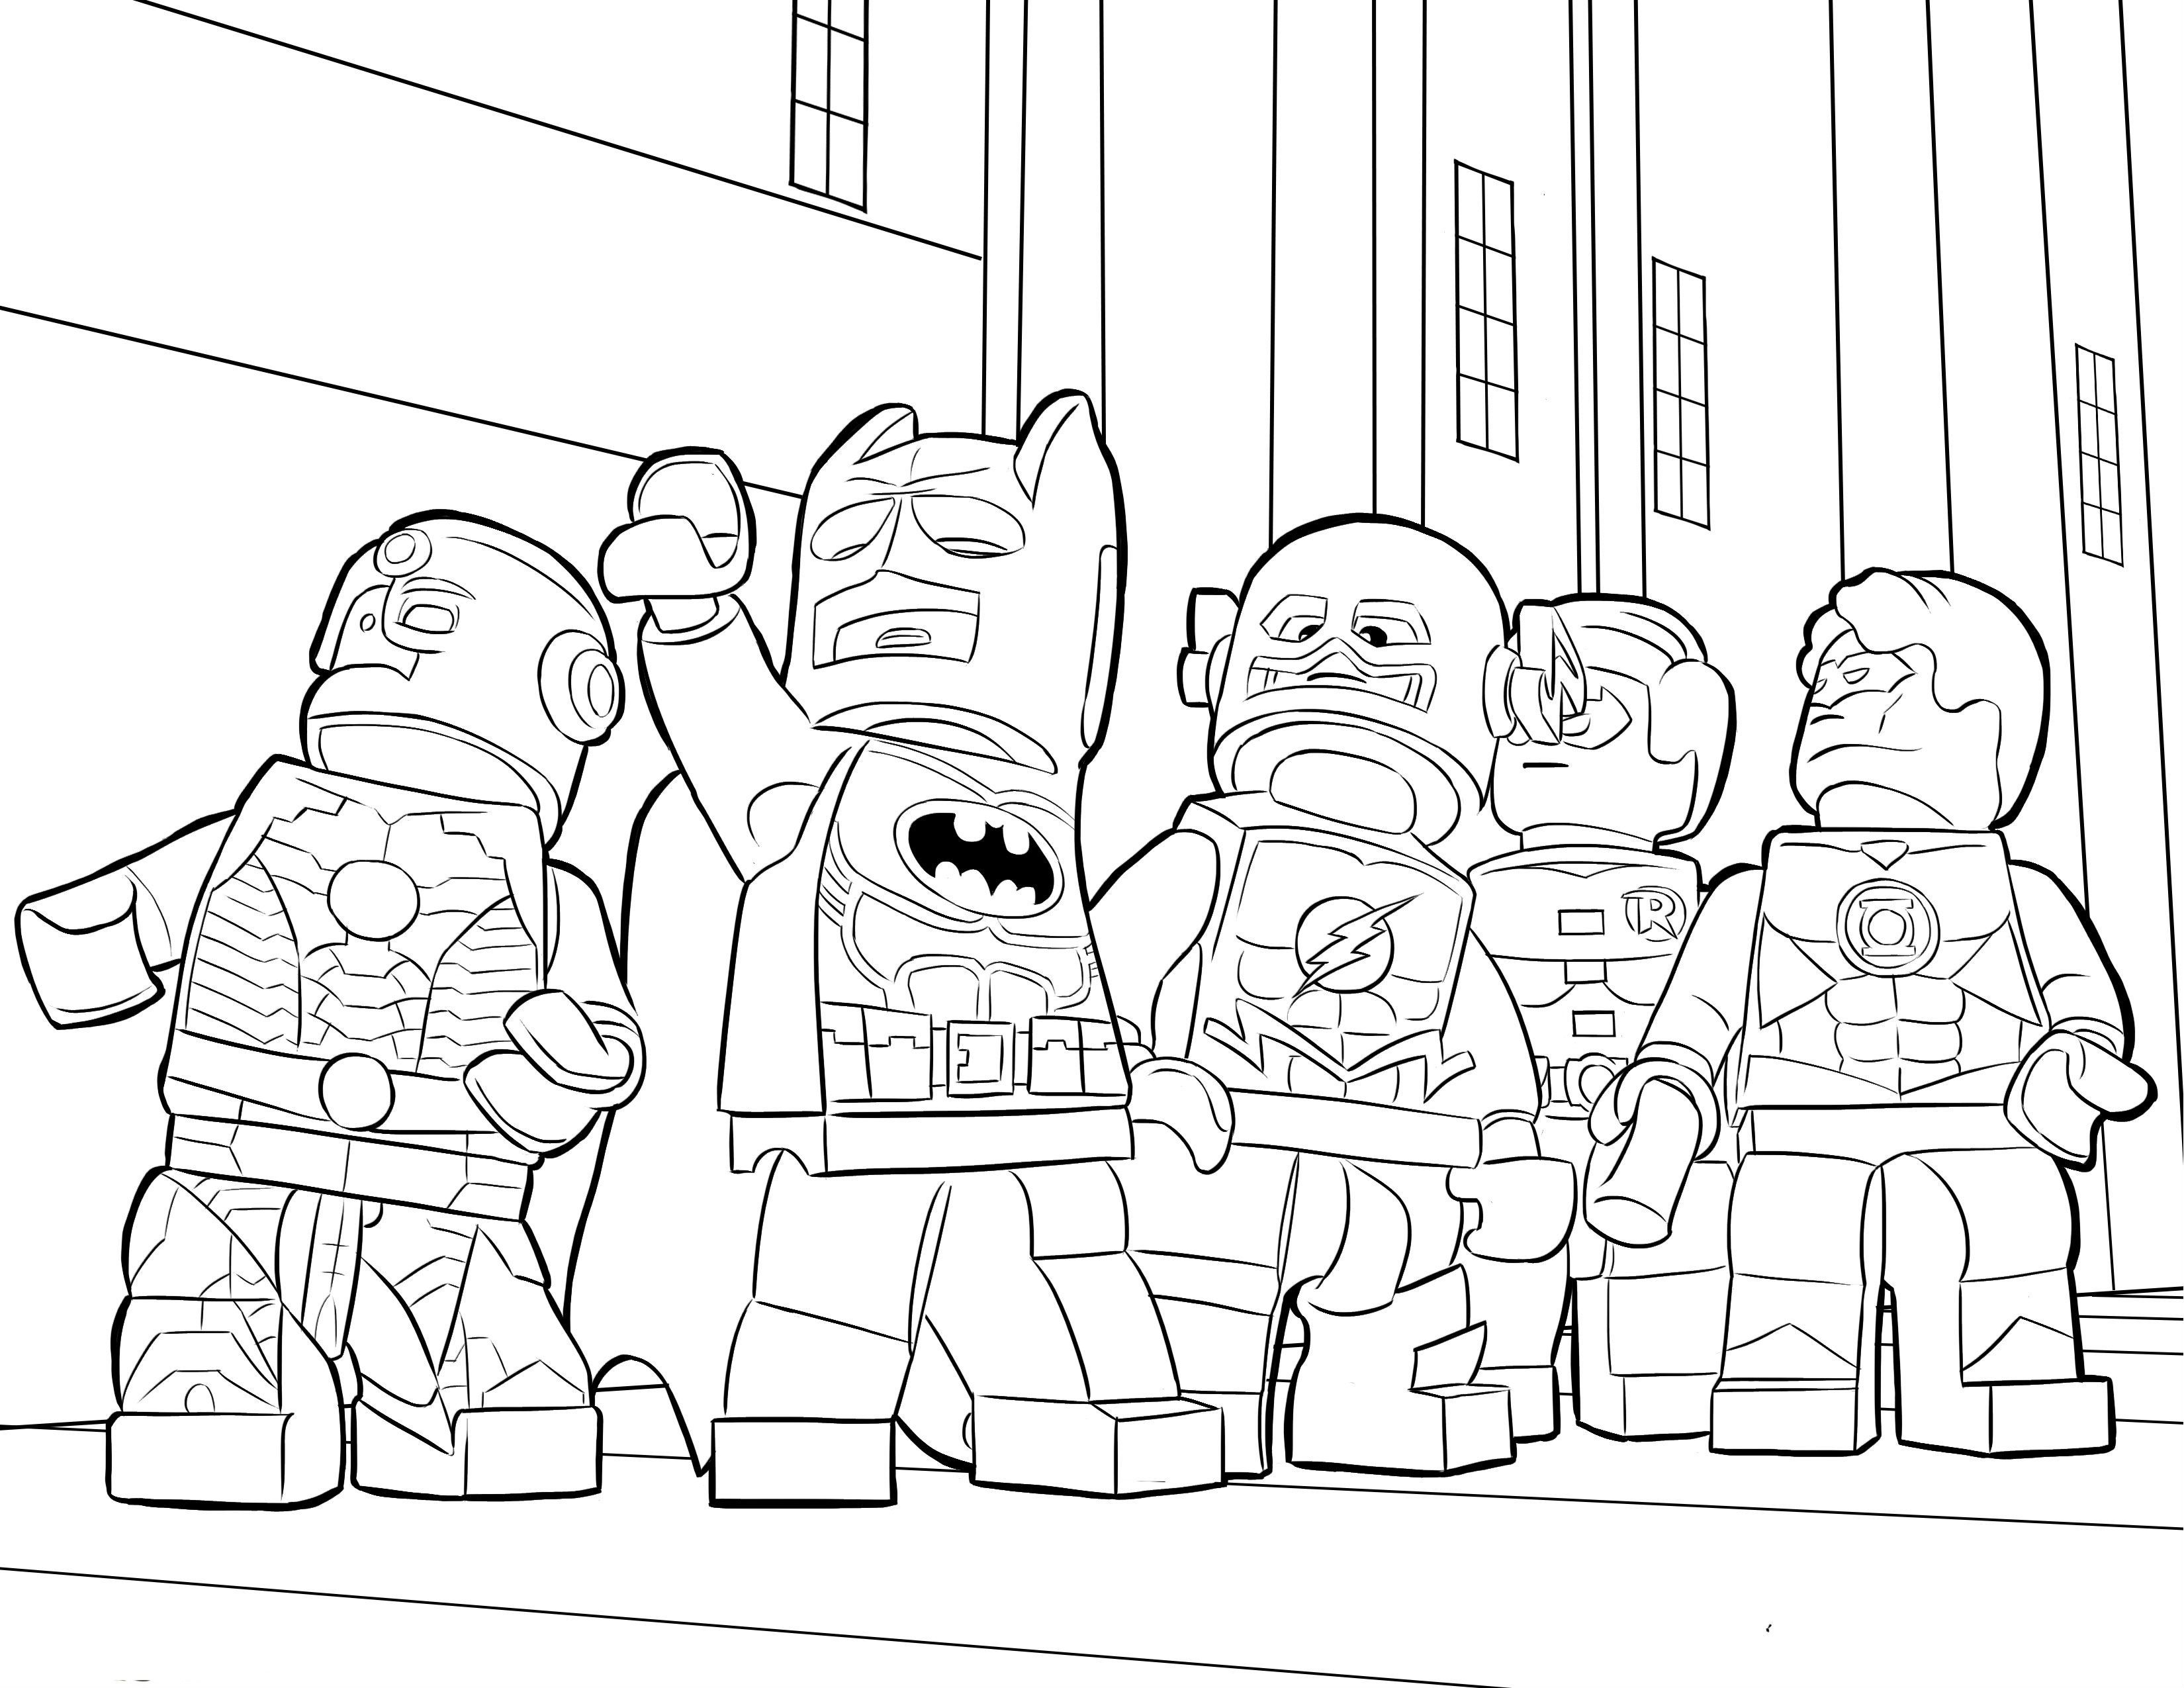 lego super heroes coloring pages lego superheroes coloring pages coloring pages to super lego heroes coloring pages